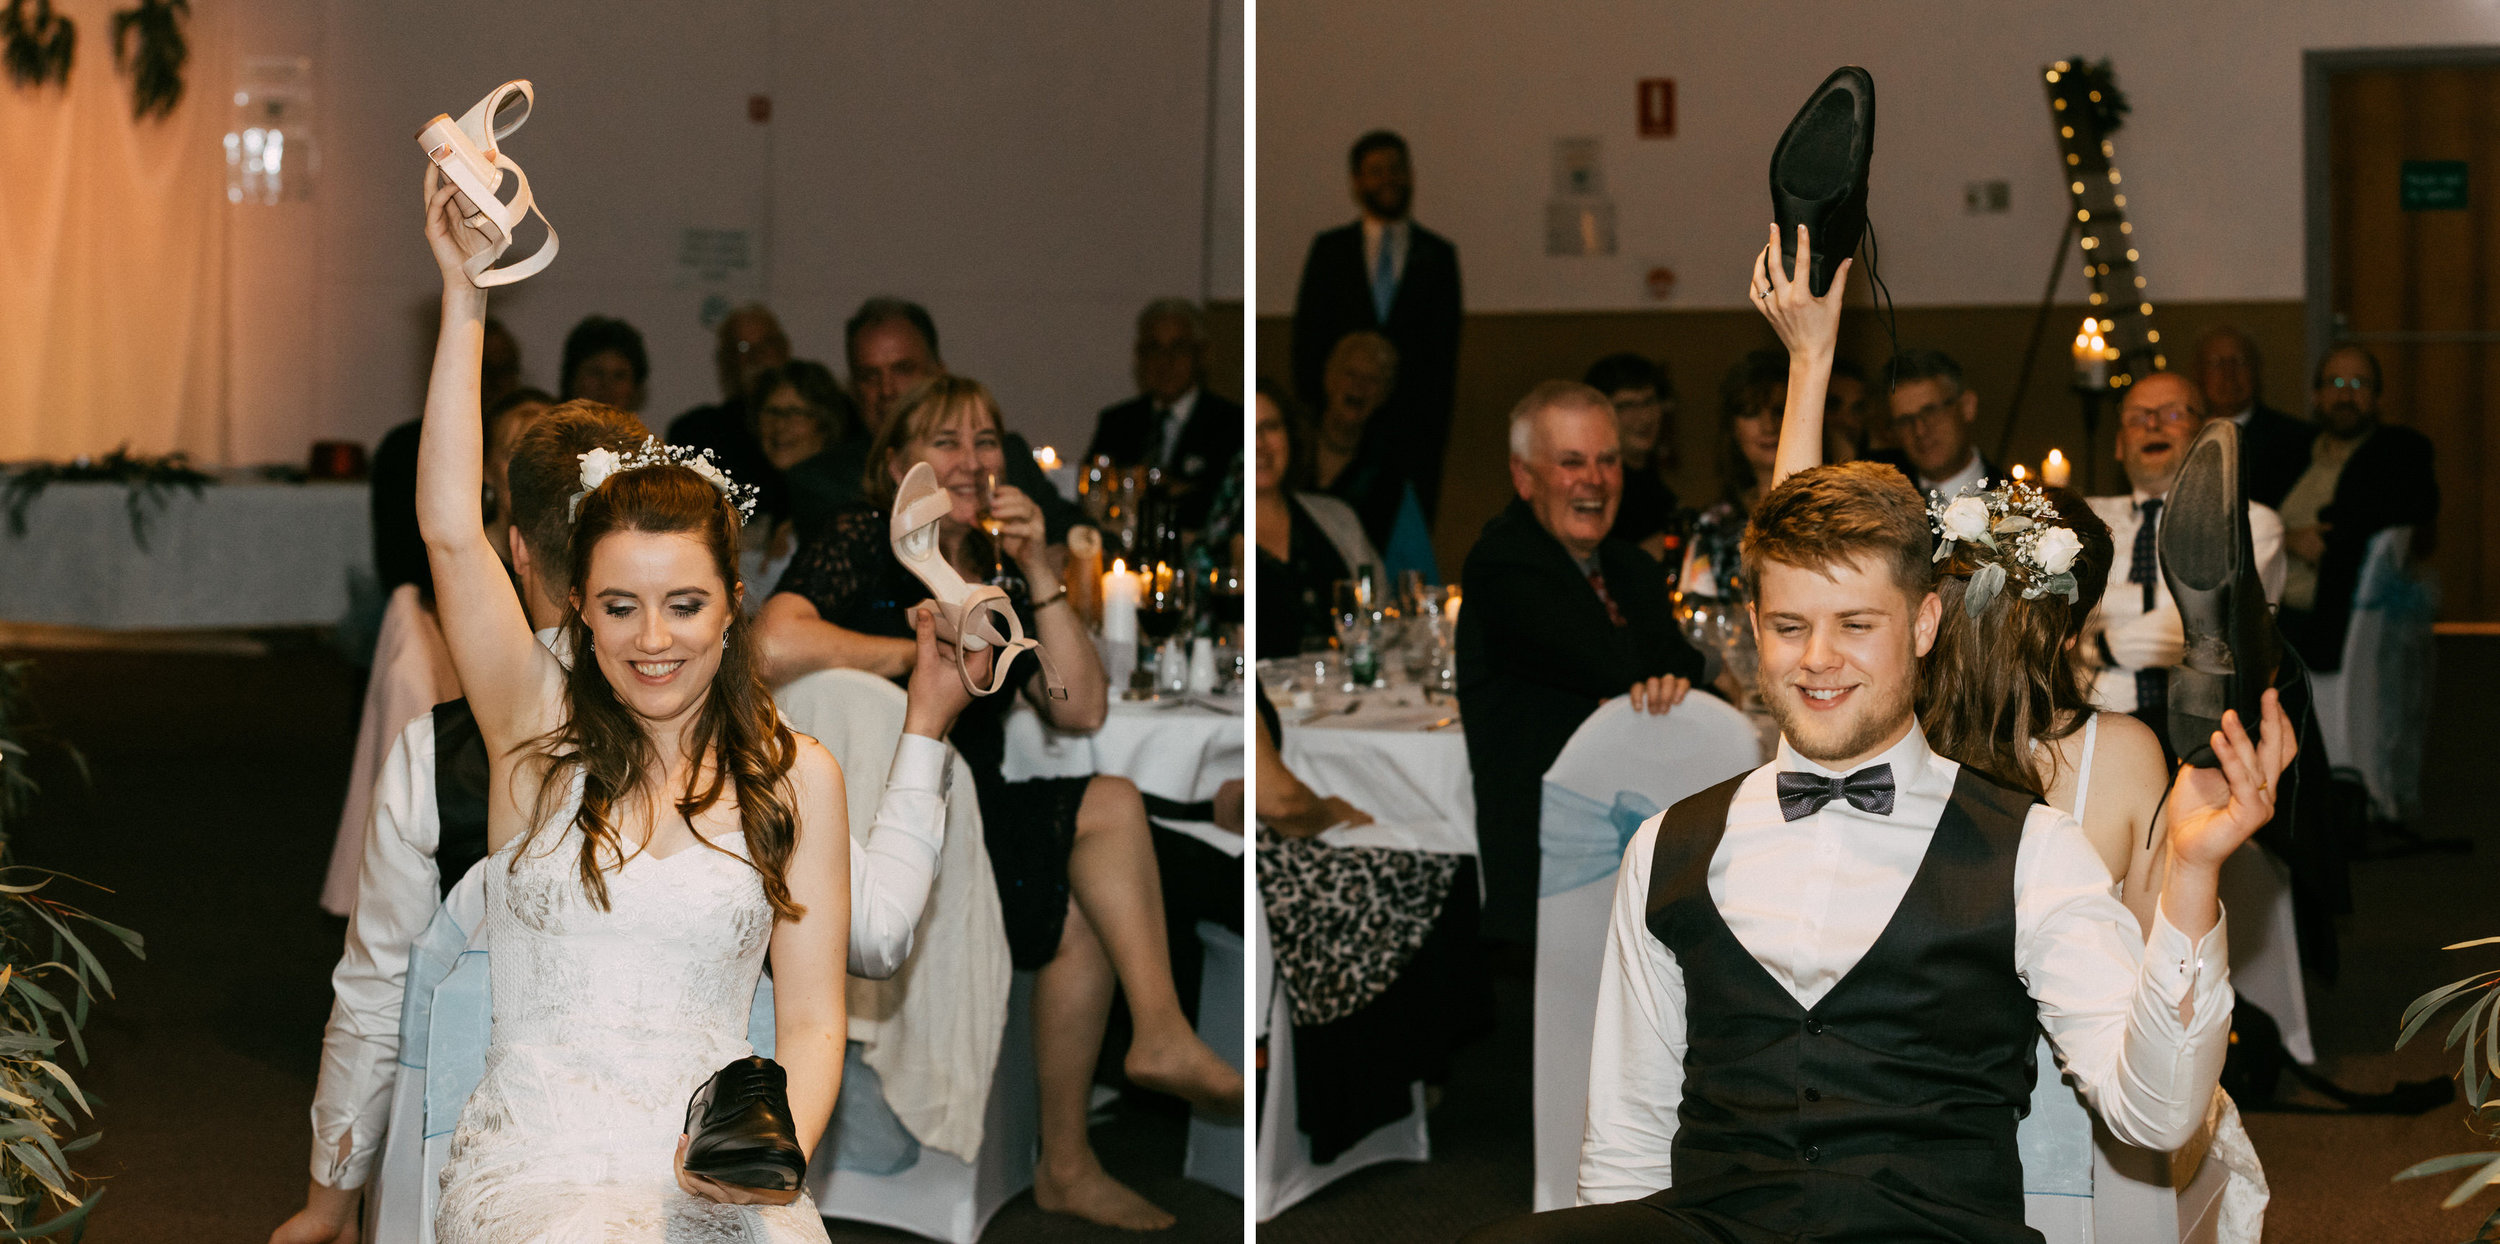 Wedding Photography Tasmania 143.jpg